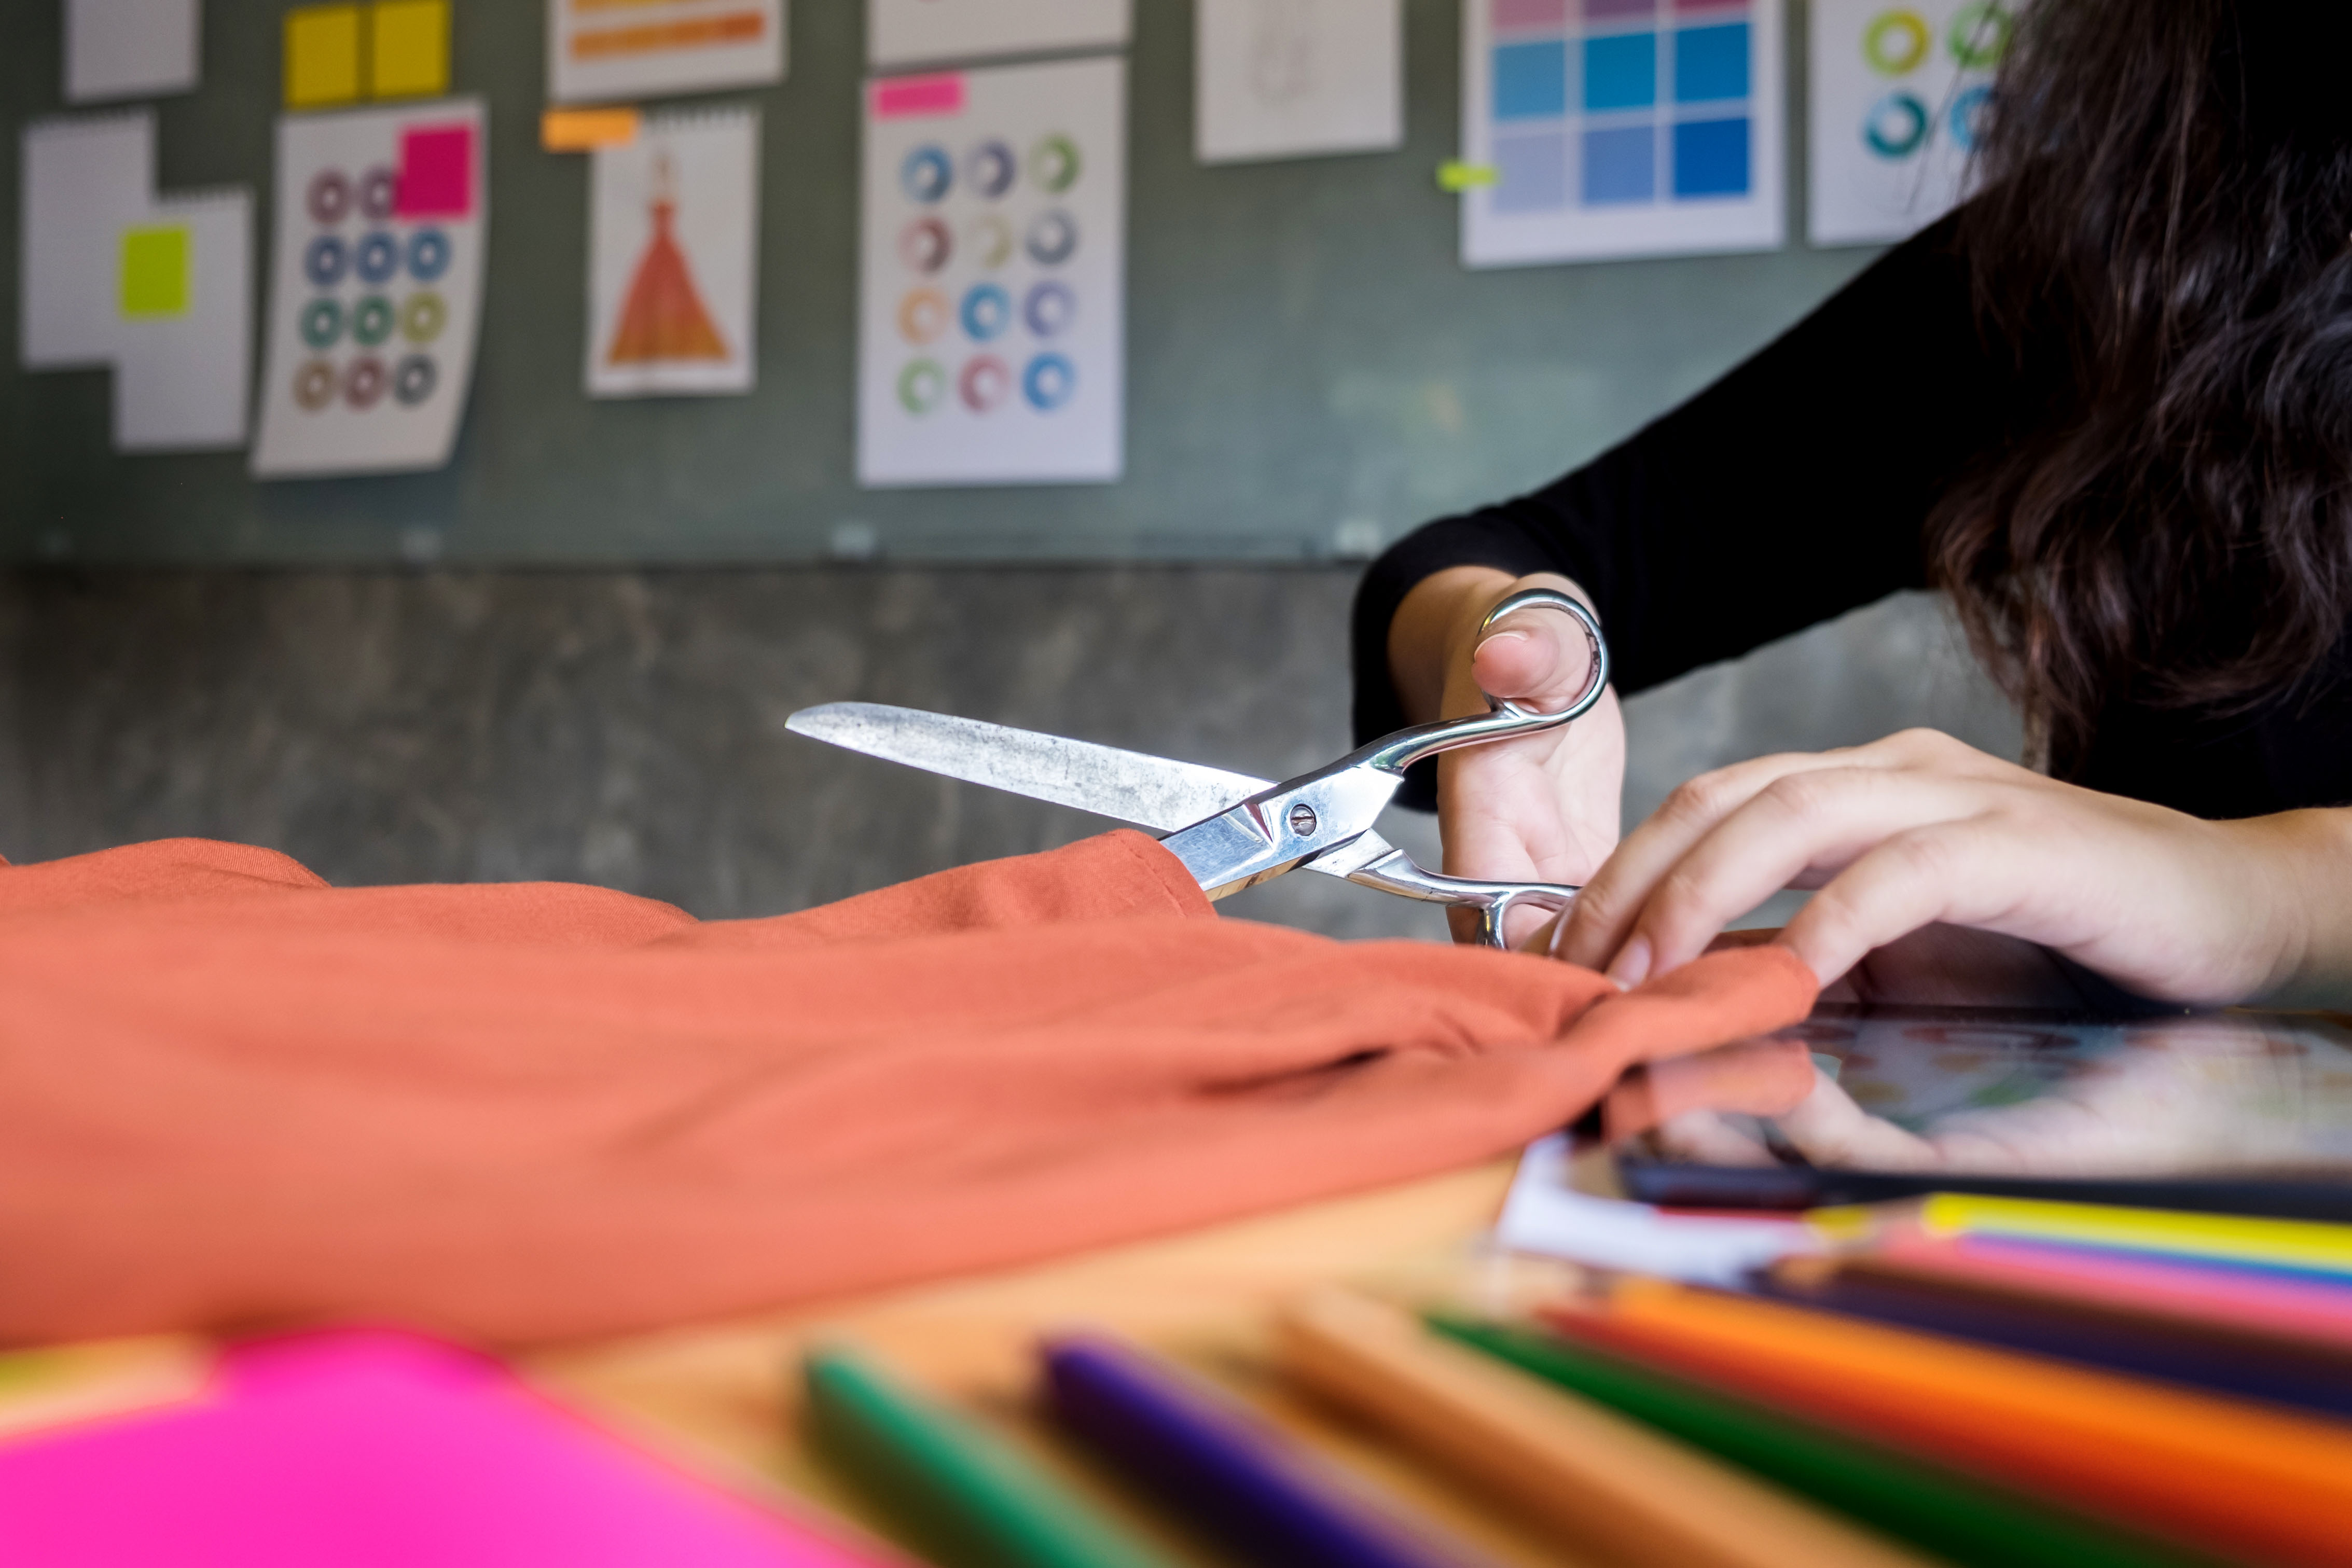 Fashion Designing Courses In Bangalore International Institute Of Fashion Design Fashion Designing Courses In